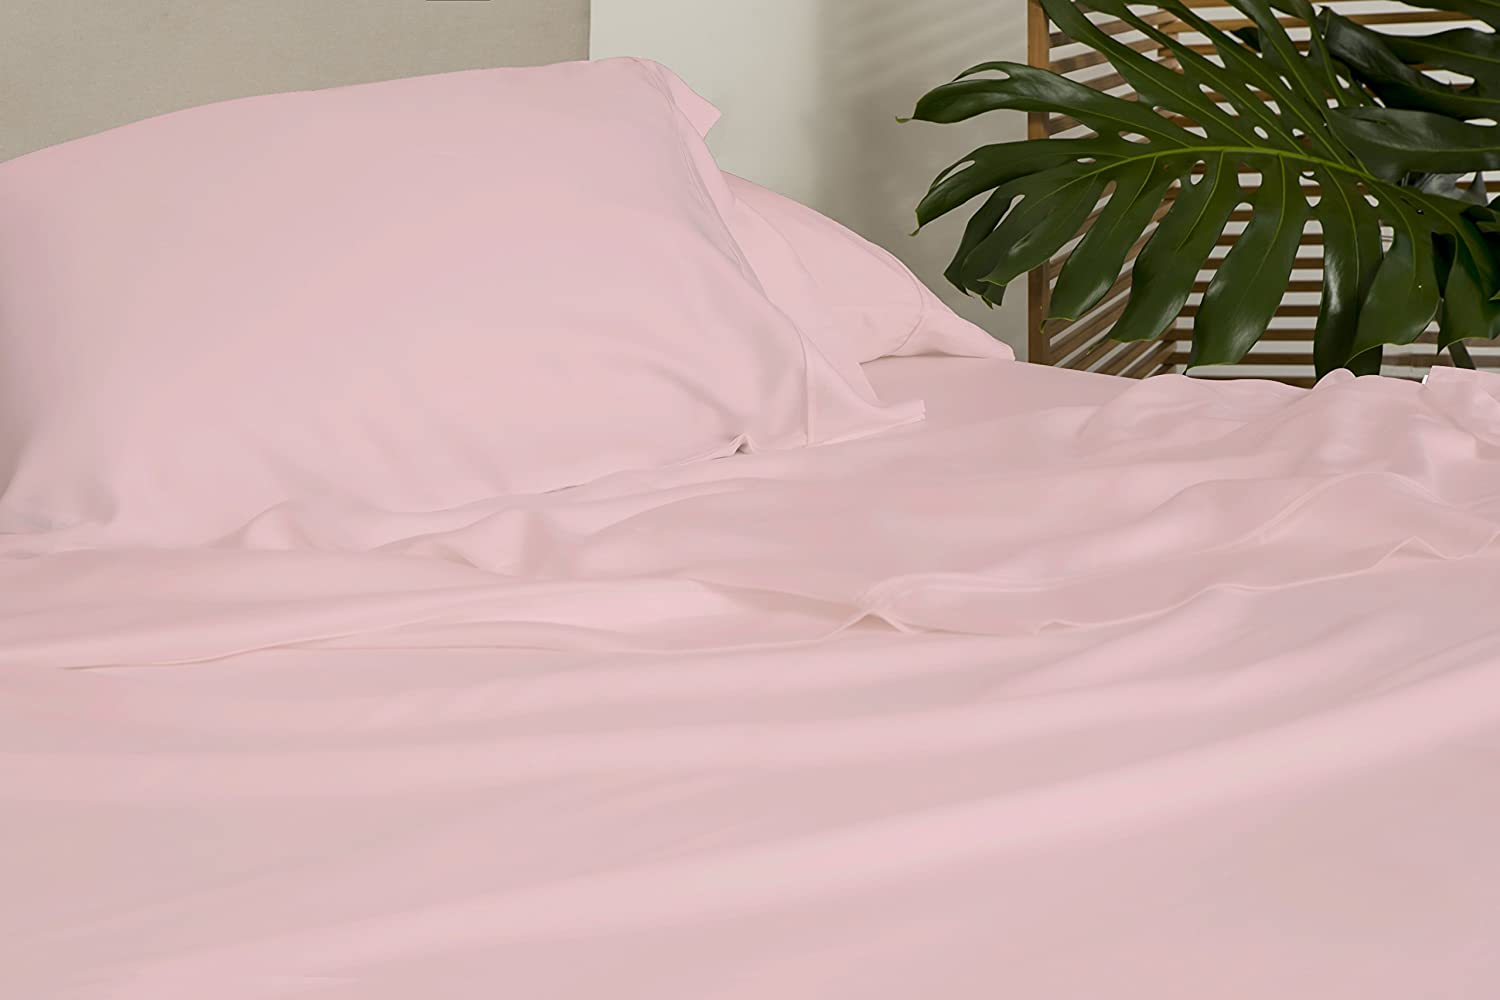 SHEEX Arctic Aire Max Sheet Set with 2 Pillowcases, 100% Tencel with CoolX Technology, Pink, King